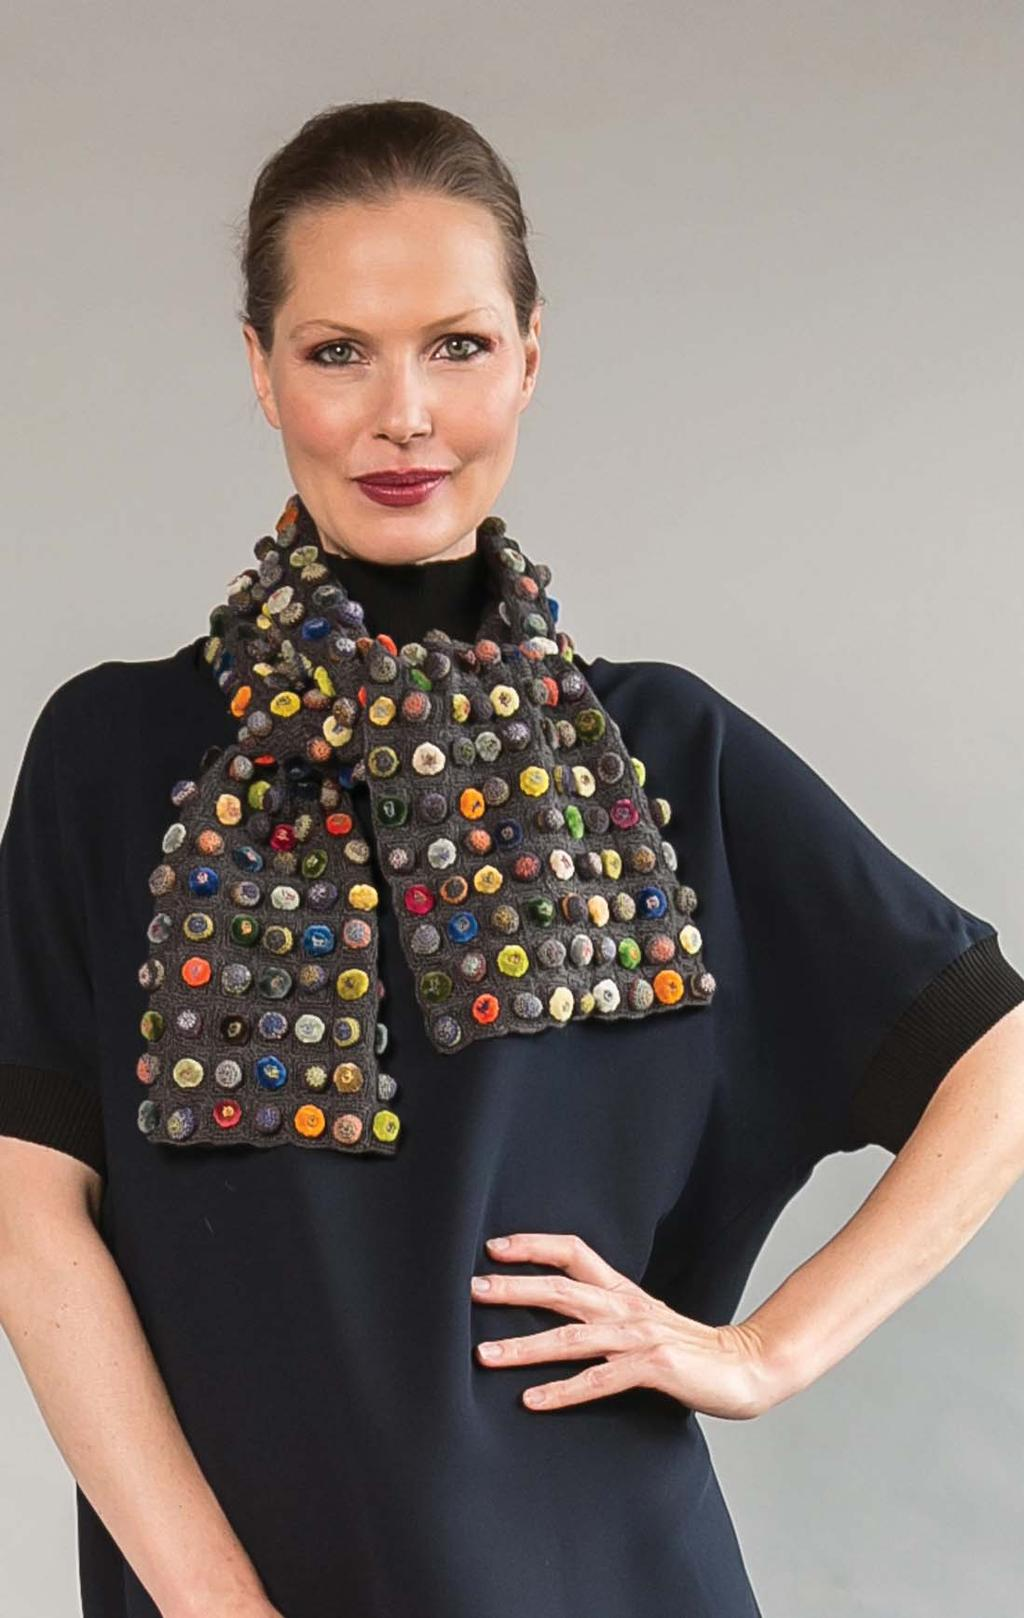 This is wearable art! Each piece is one of a kind!